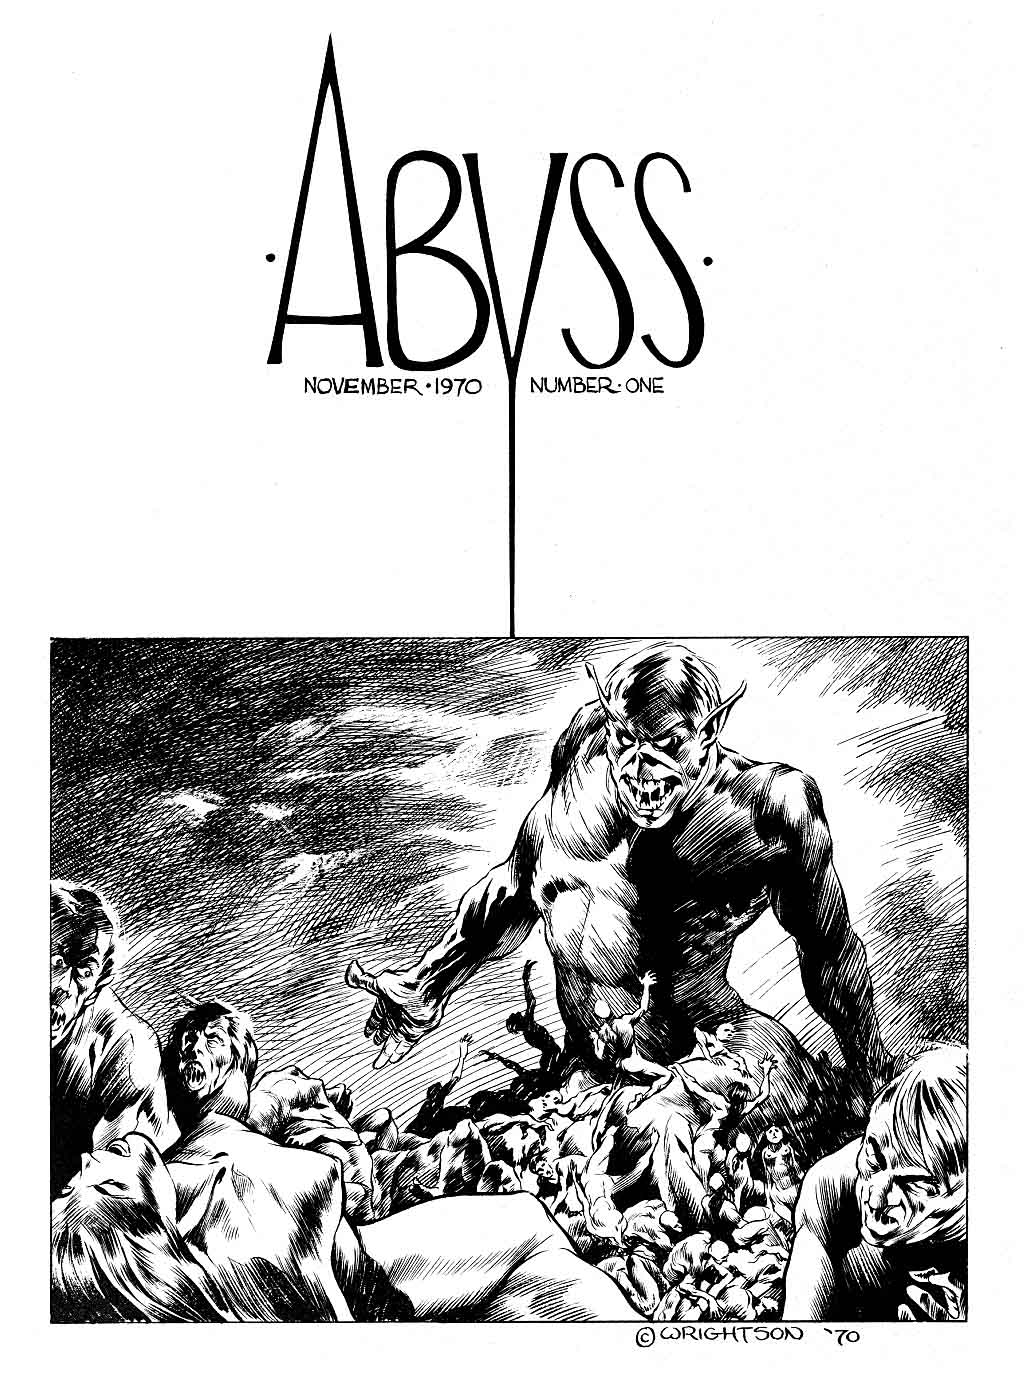 Abyss November 1970 Number One by Bernie Wrightson